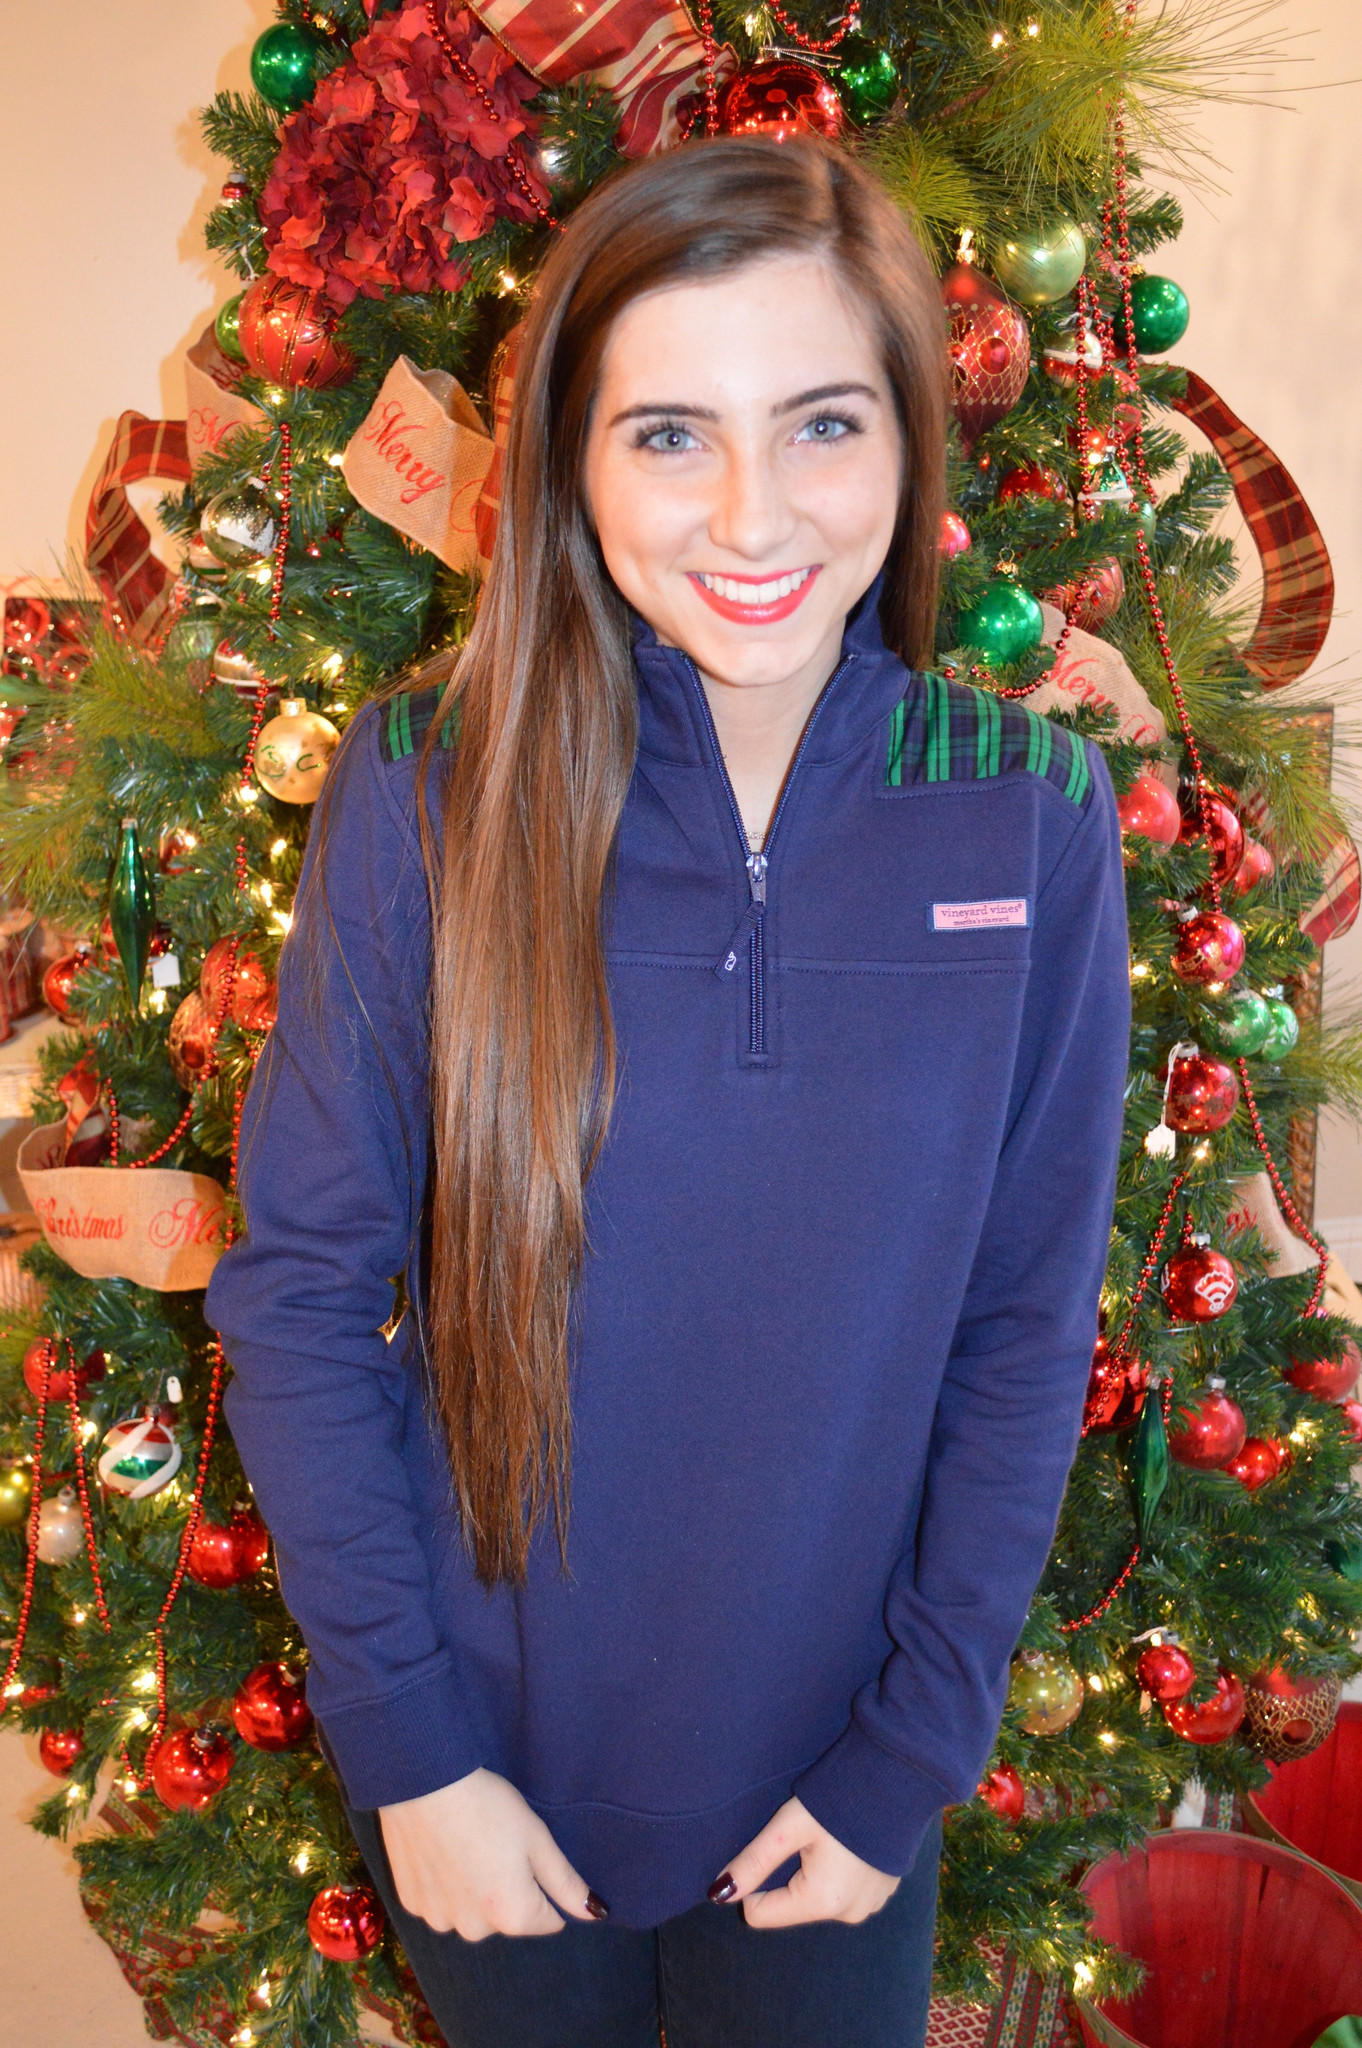 Vineyard Vines Holiday Plaid Shep Shirt From Shop